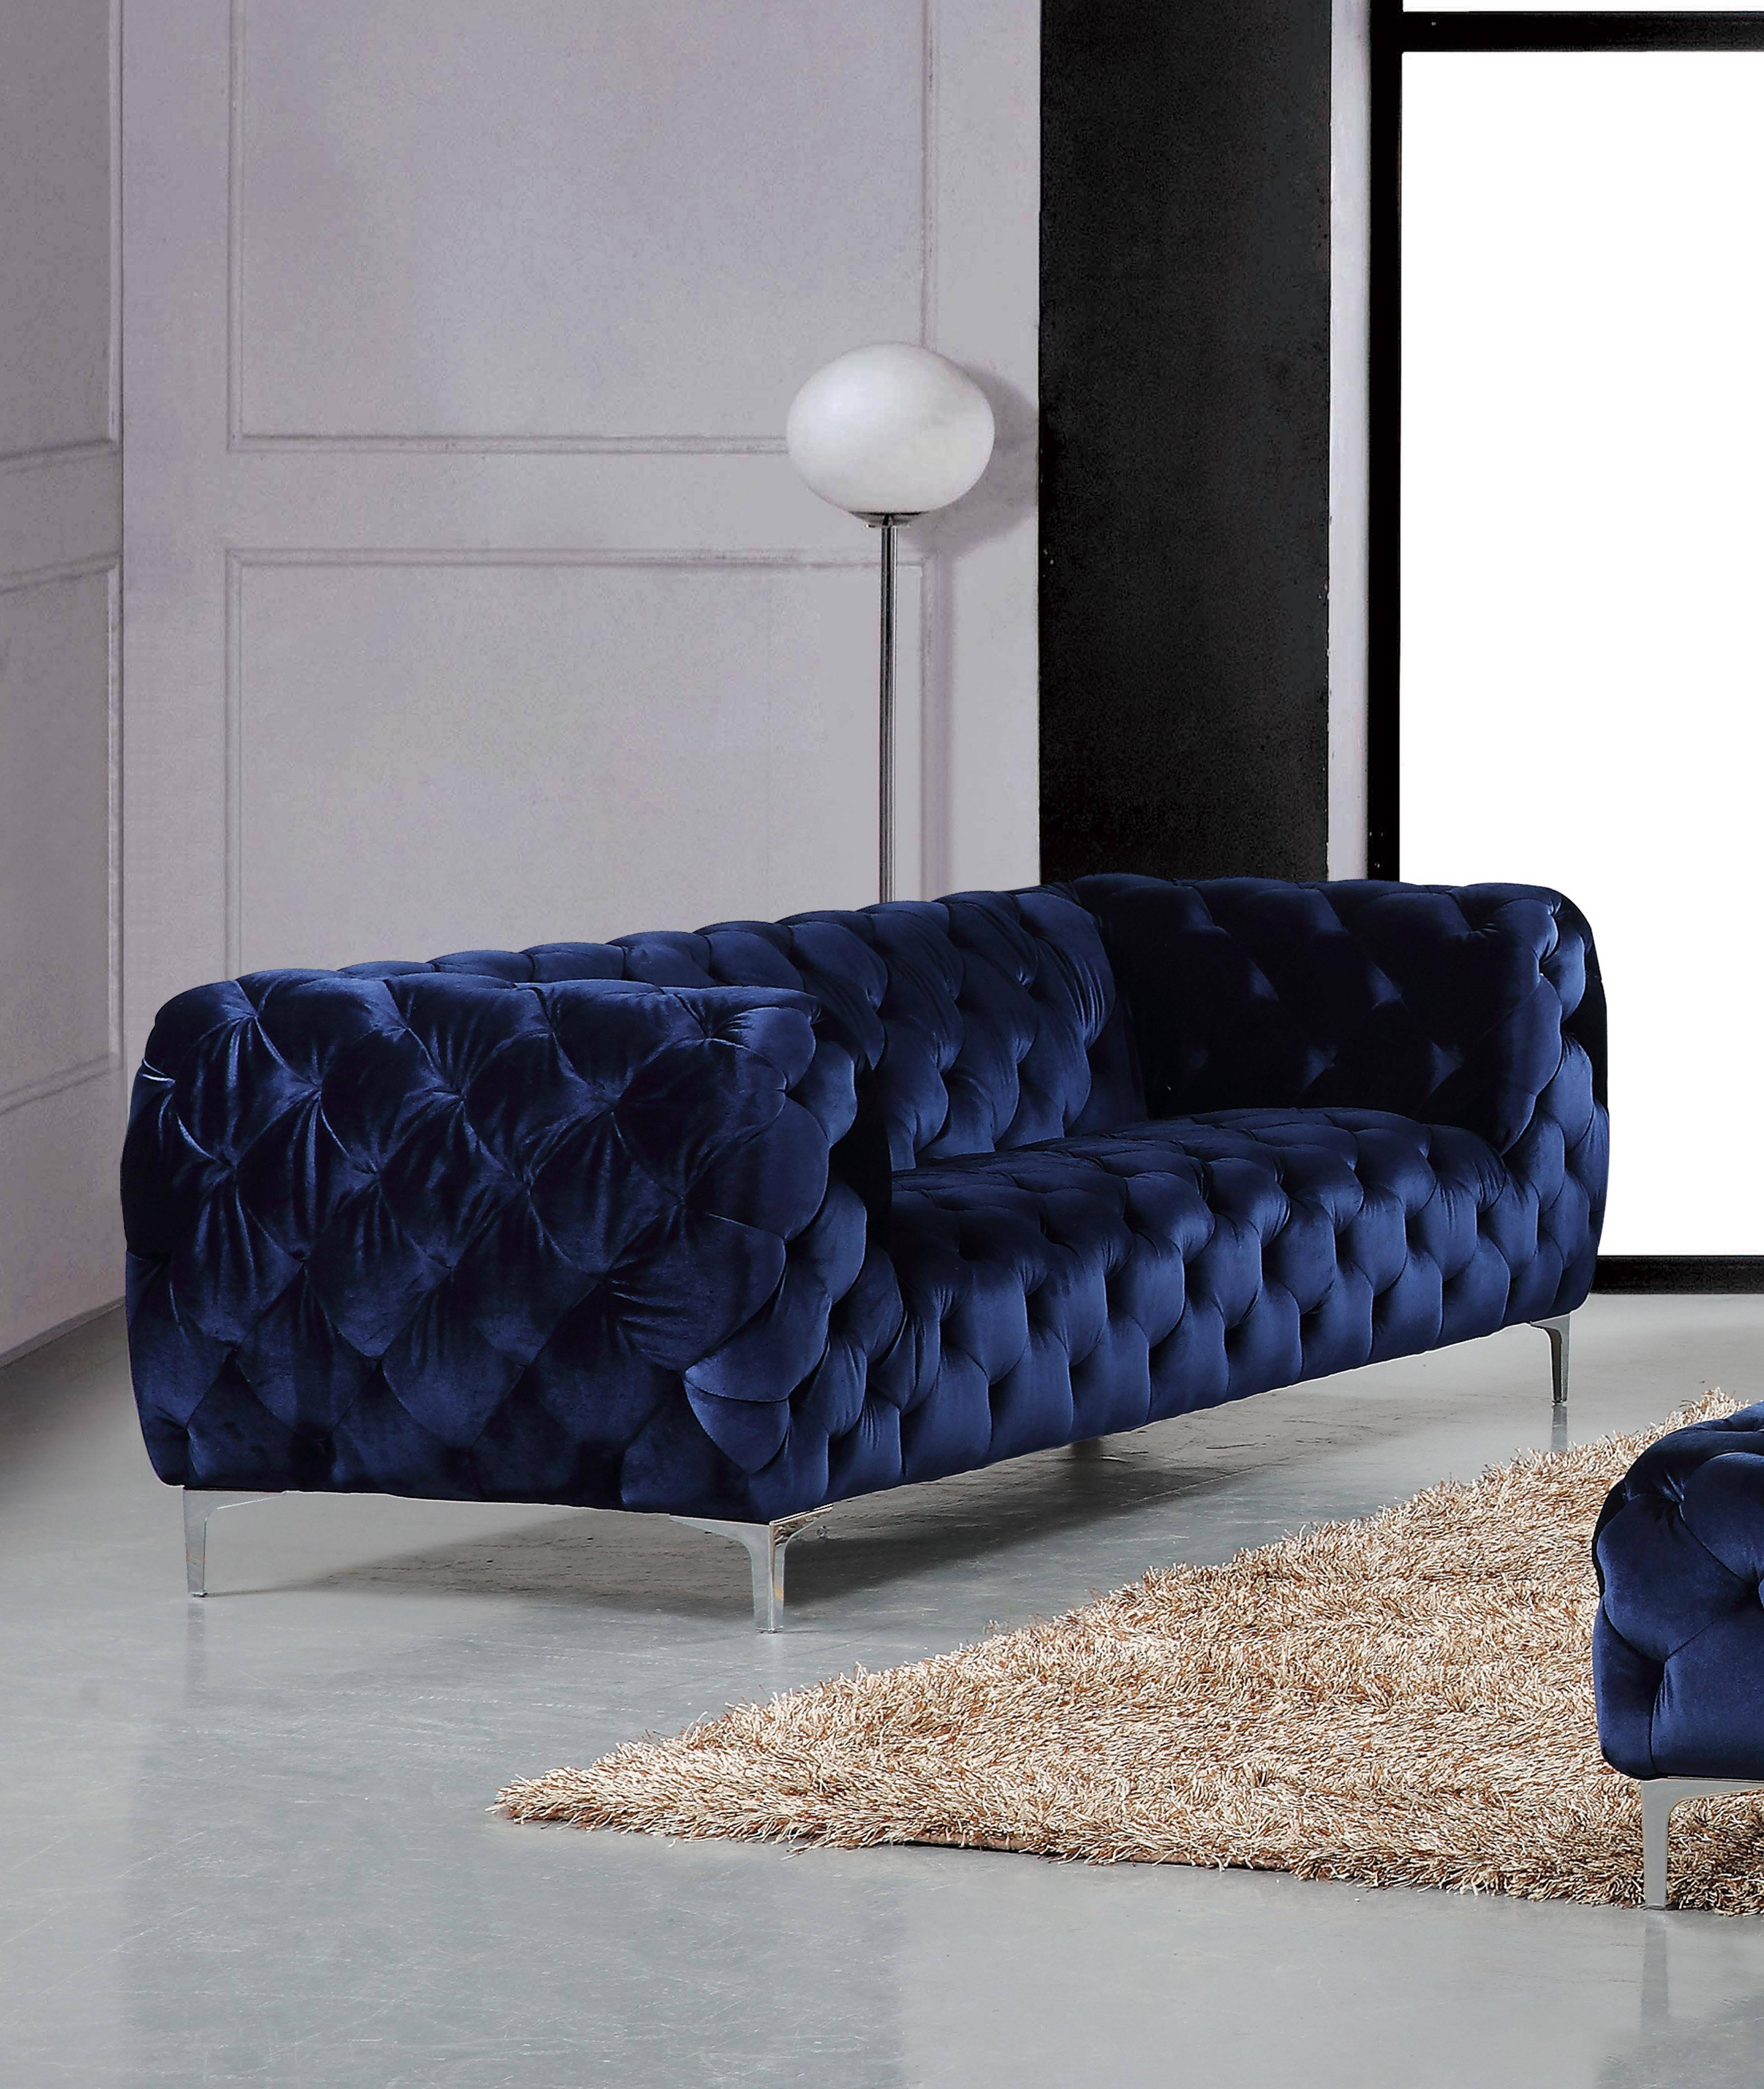 Meridian 646 Mercer Navy Tufted Sofa Contemporary Modern (646 Mercer Pertaining To Mercer Foam Oversized Sofa Chairs (Image 14 of 25)